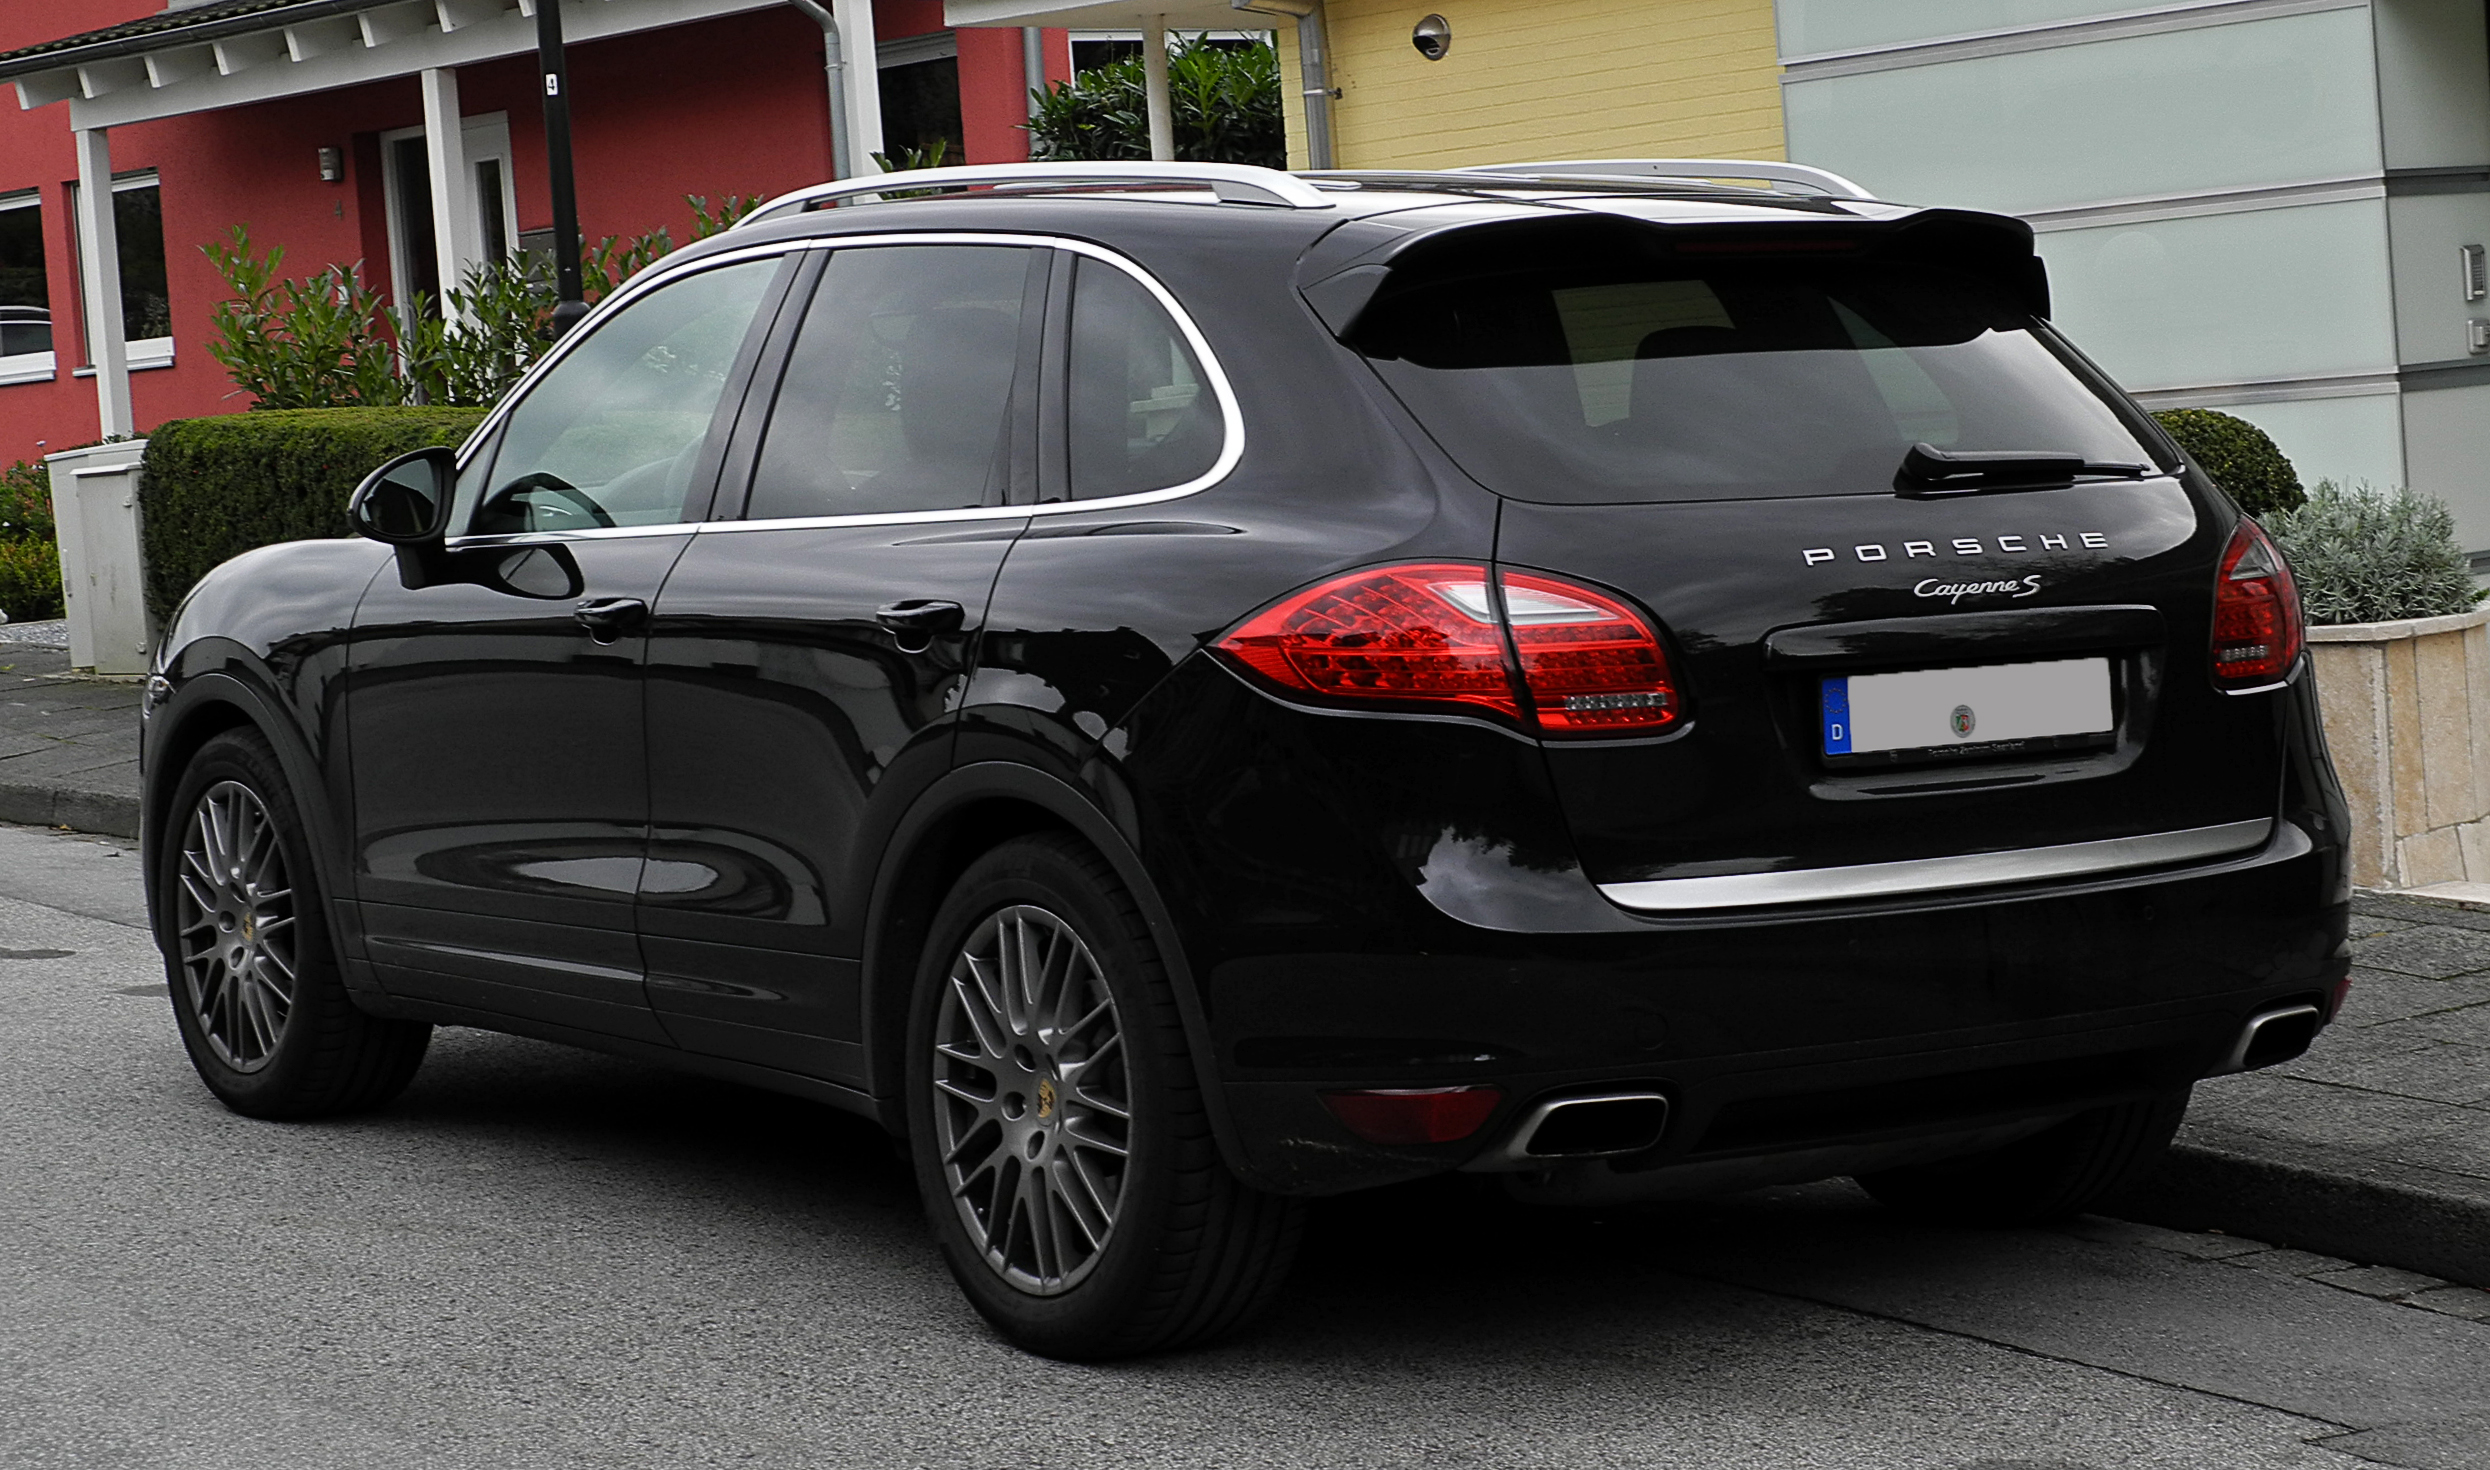 file porsche cayenne s 92a heckansicht 10 oktober. Black Bedroom Furniture Sets. Home Design Ideas